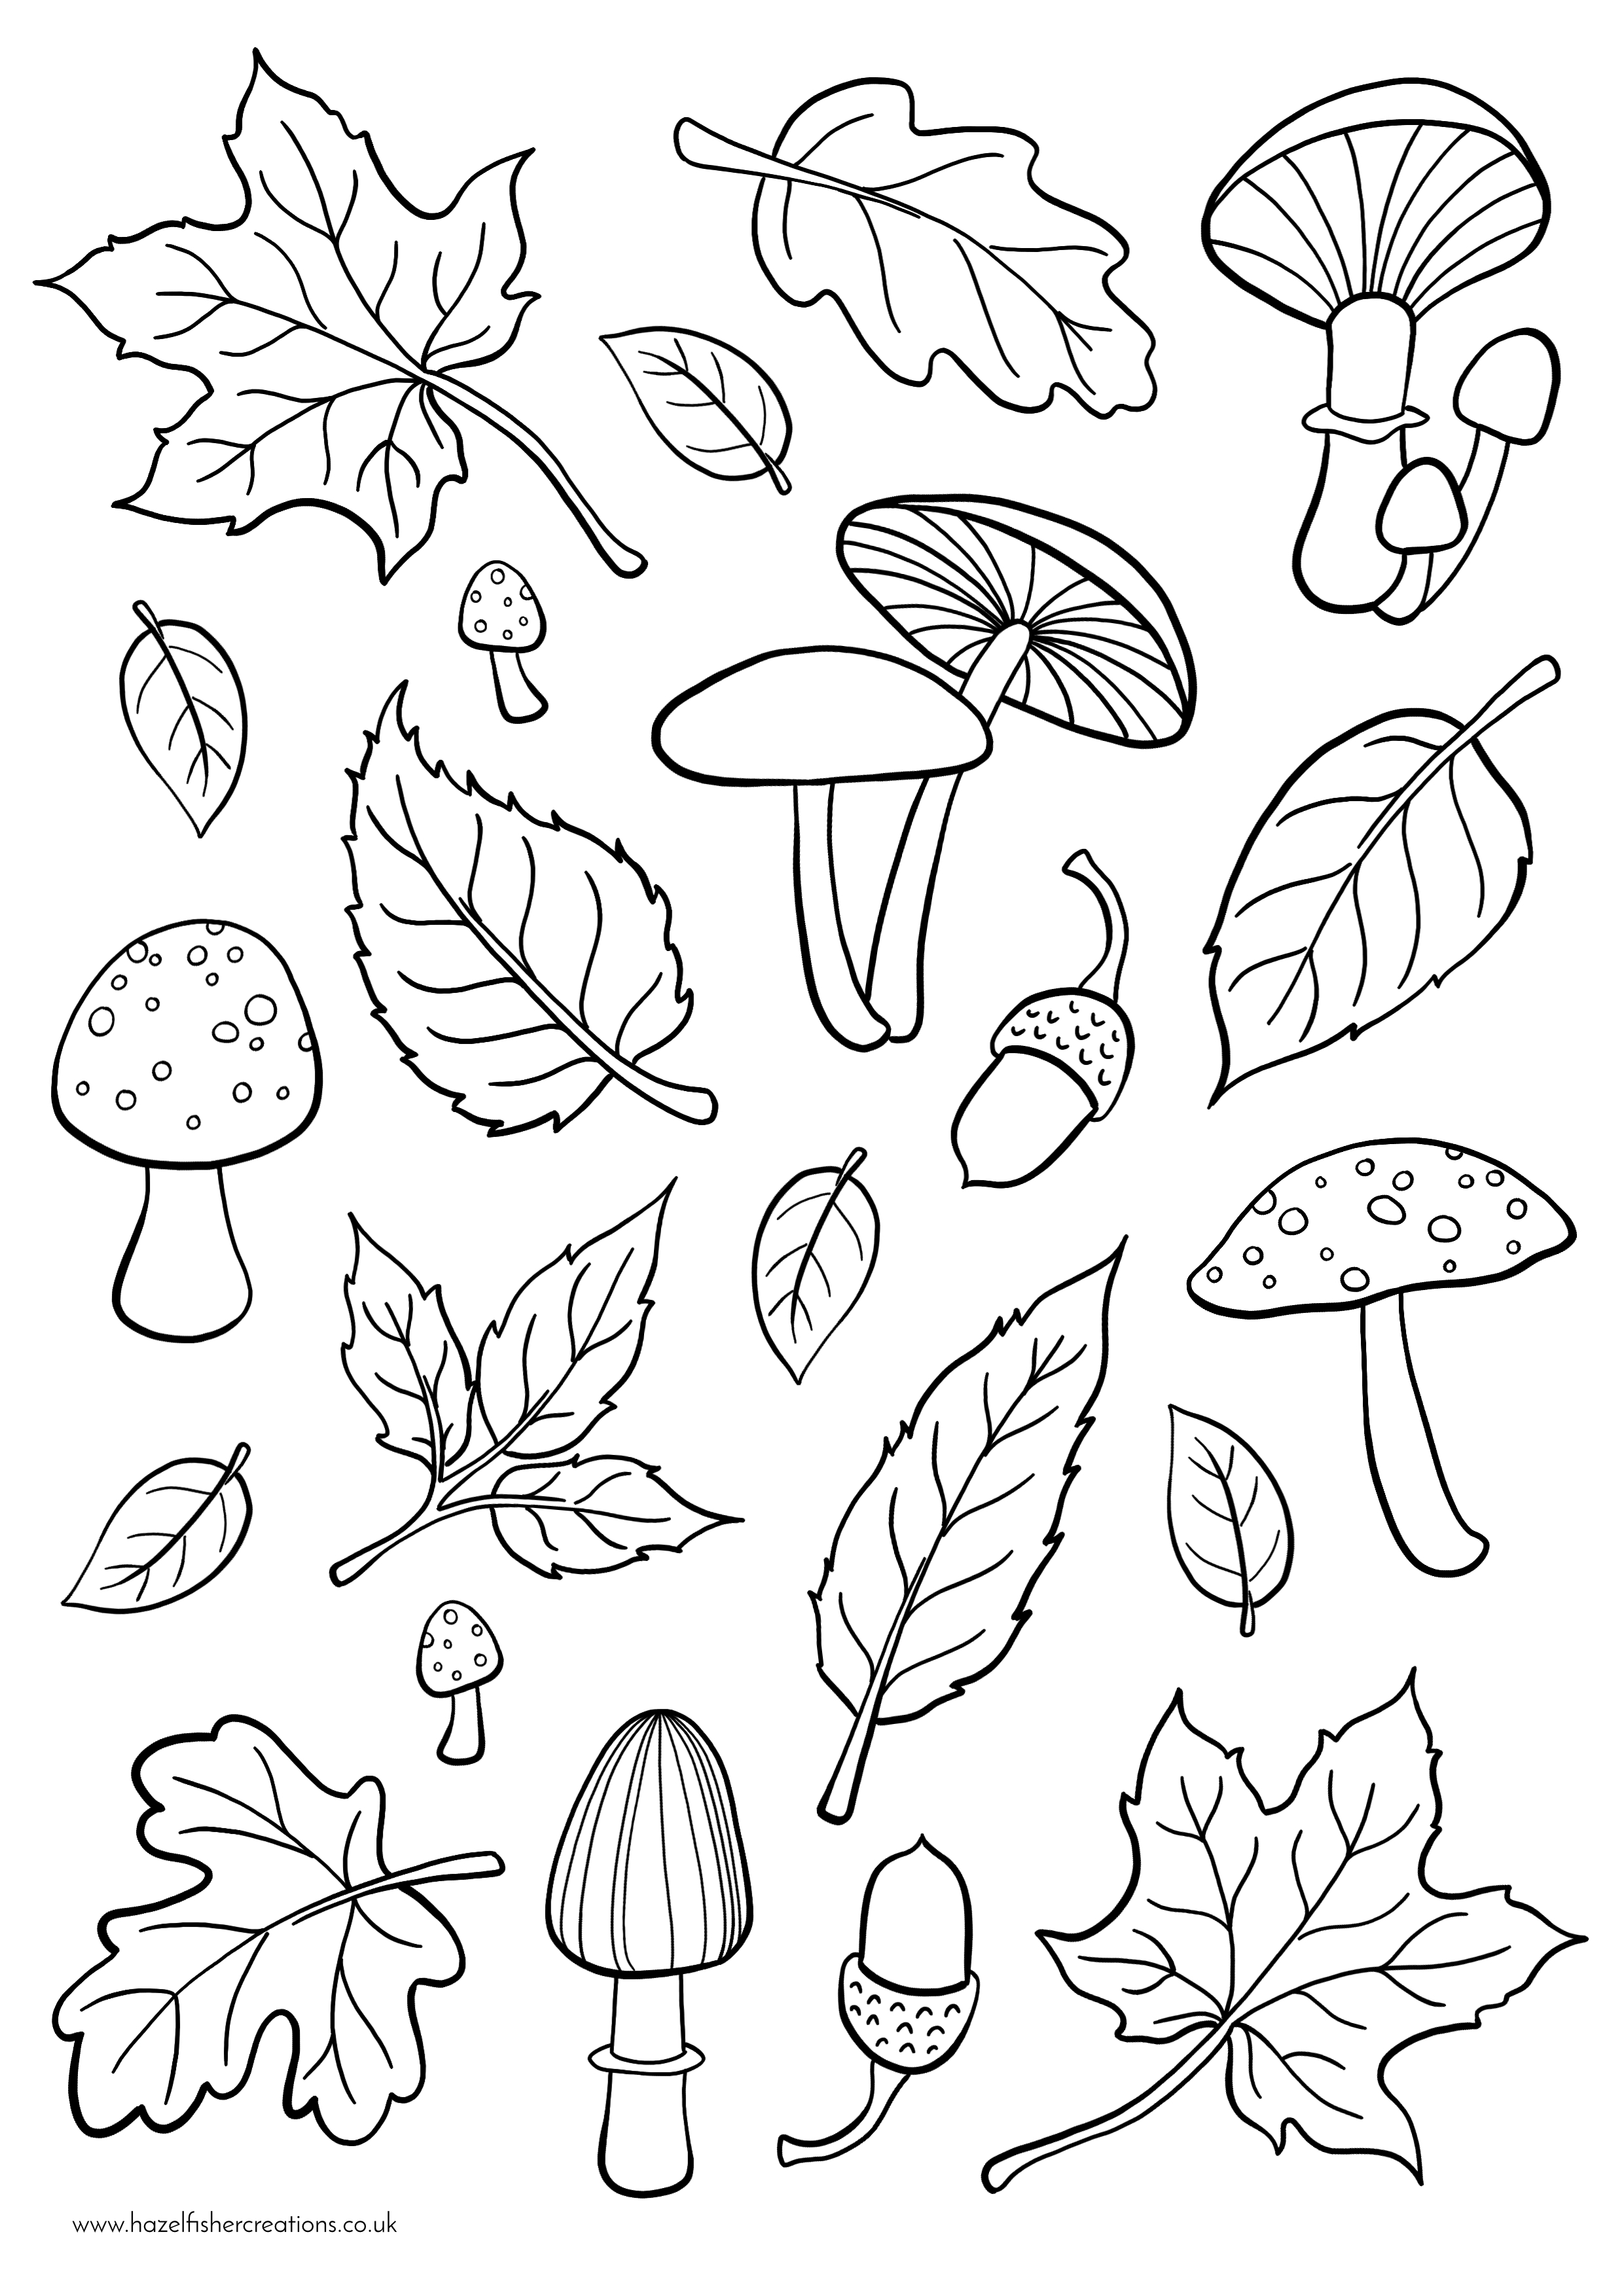 Autumn Colouring In Activity Sheet  image